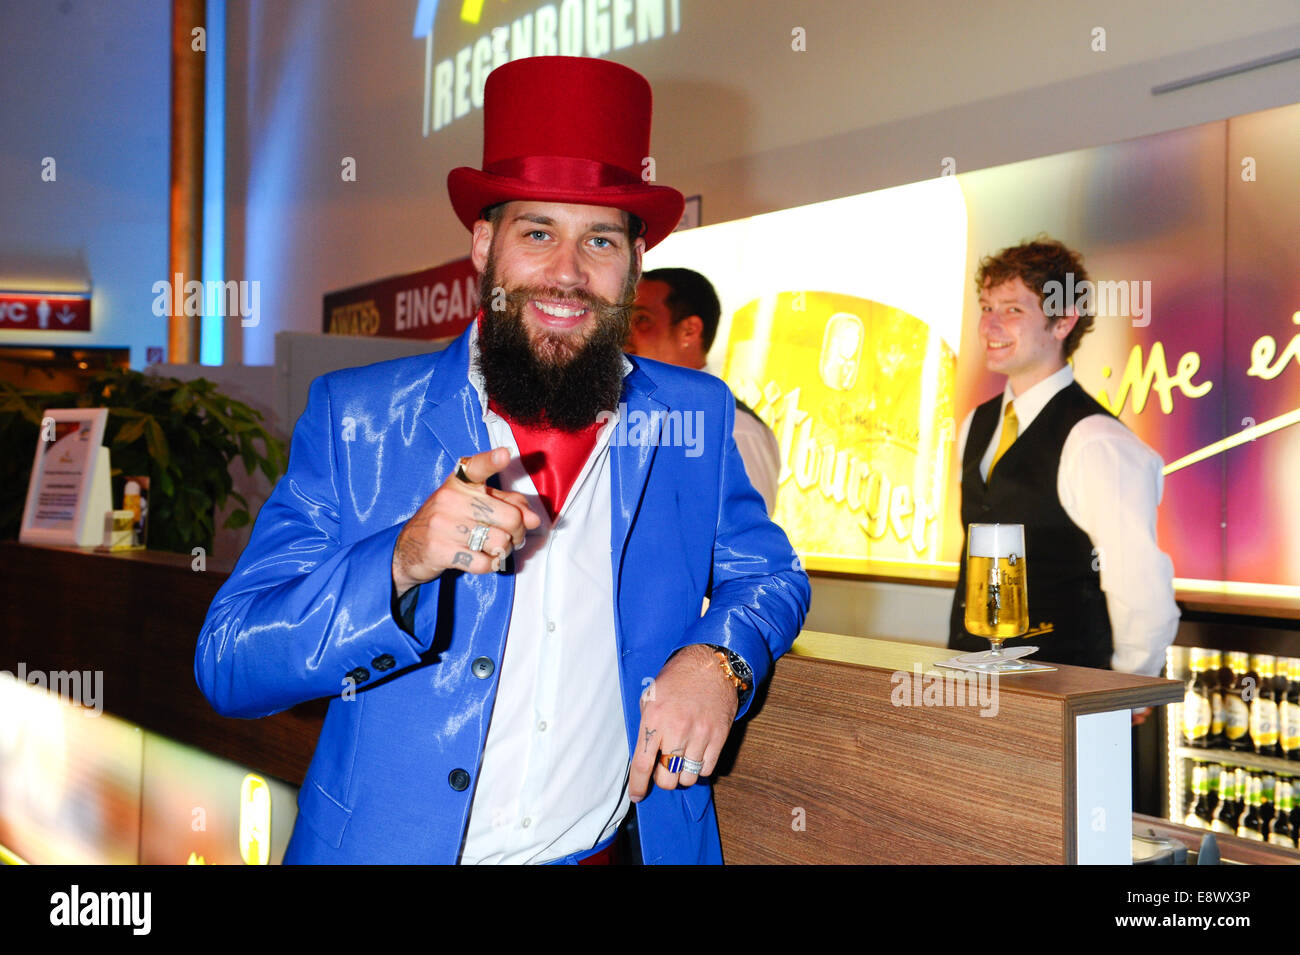 Radio Regenbogen Award 2014 at Europa-Park. - Arrivals  Featuring: Dino Sadino Where: Rust, Germany When: 12 Apr - Stock Image